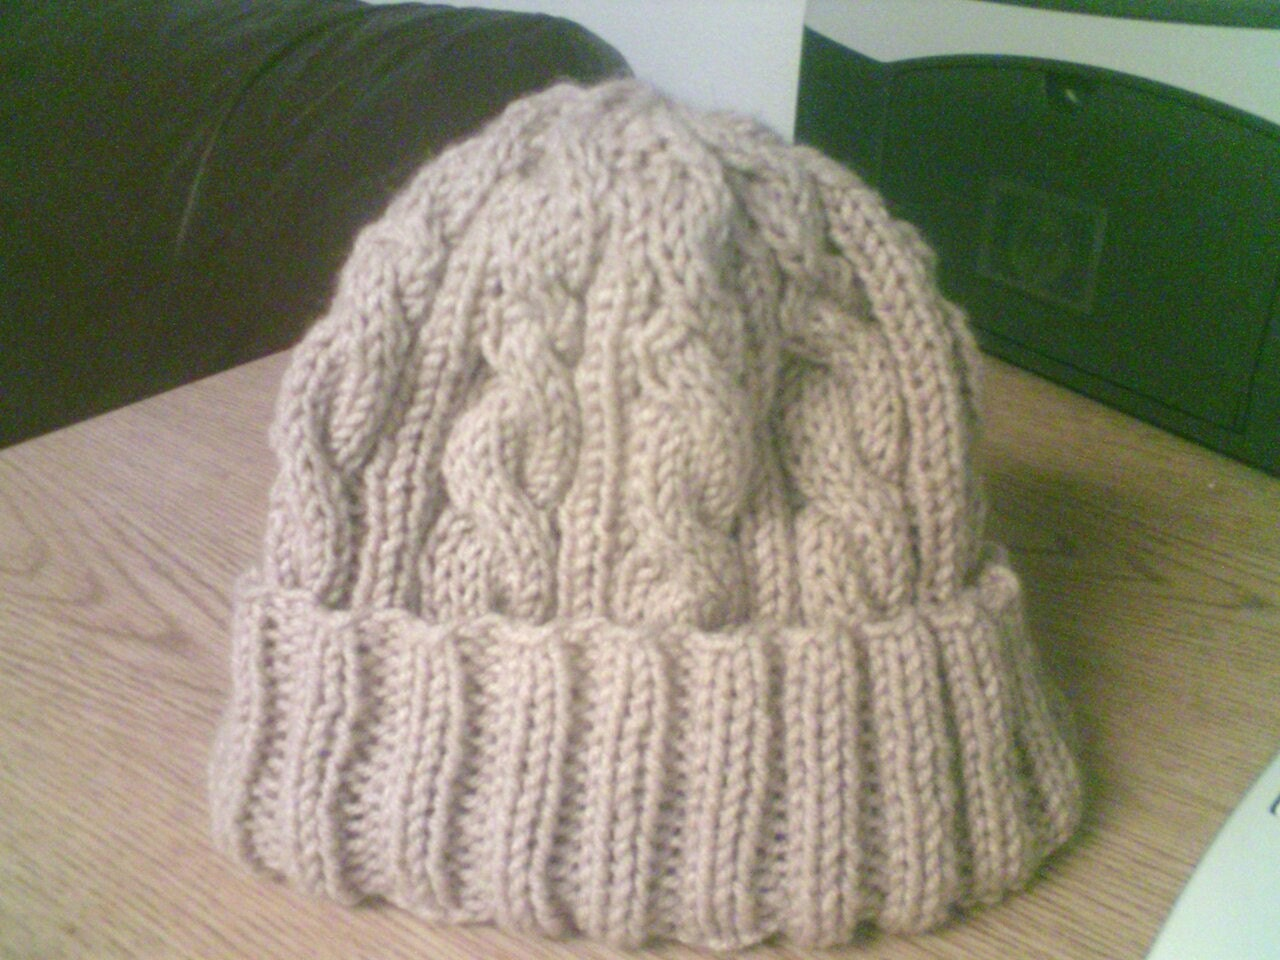 Flat Knitting Patterns : Flat-Knit Cabled Hat Pattern